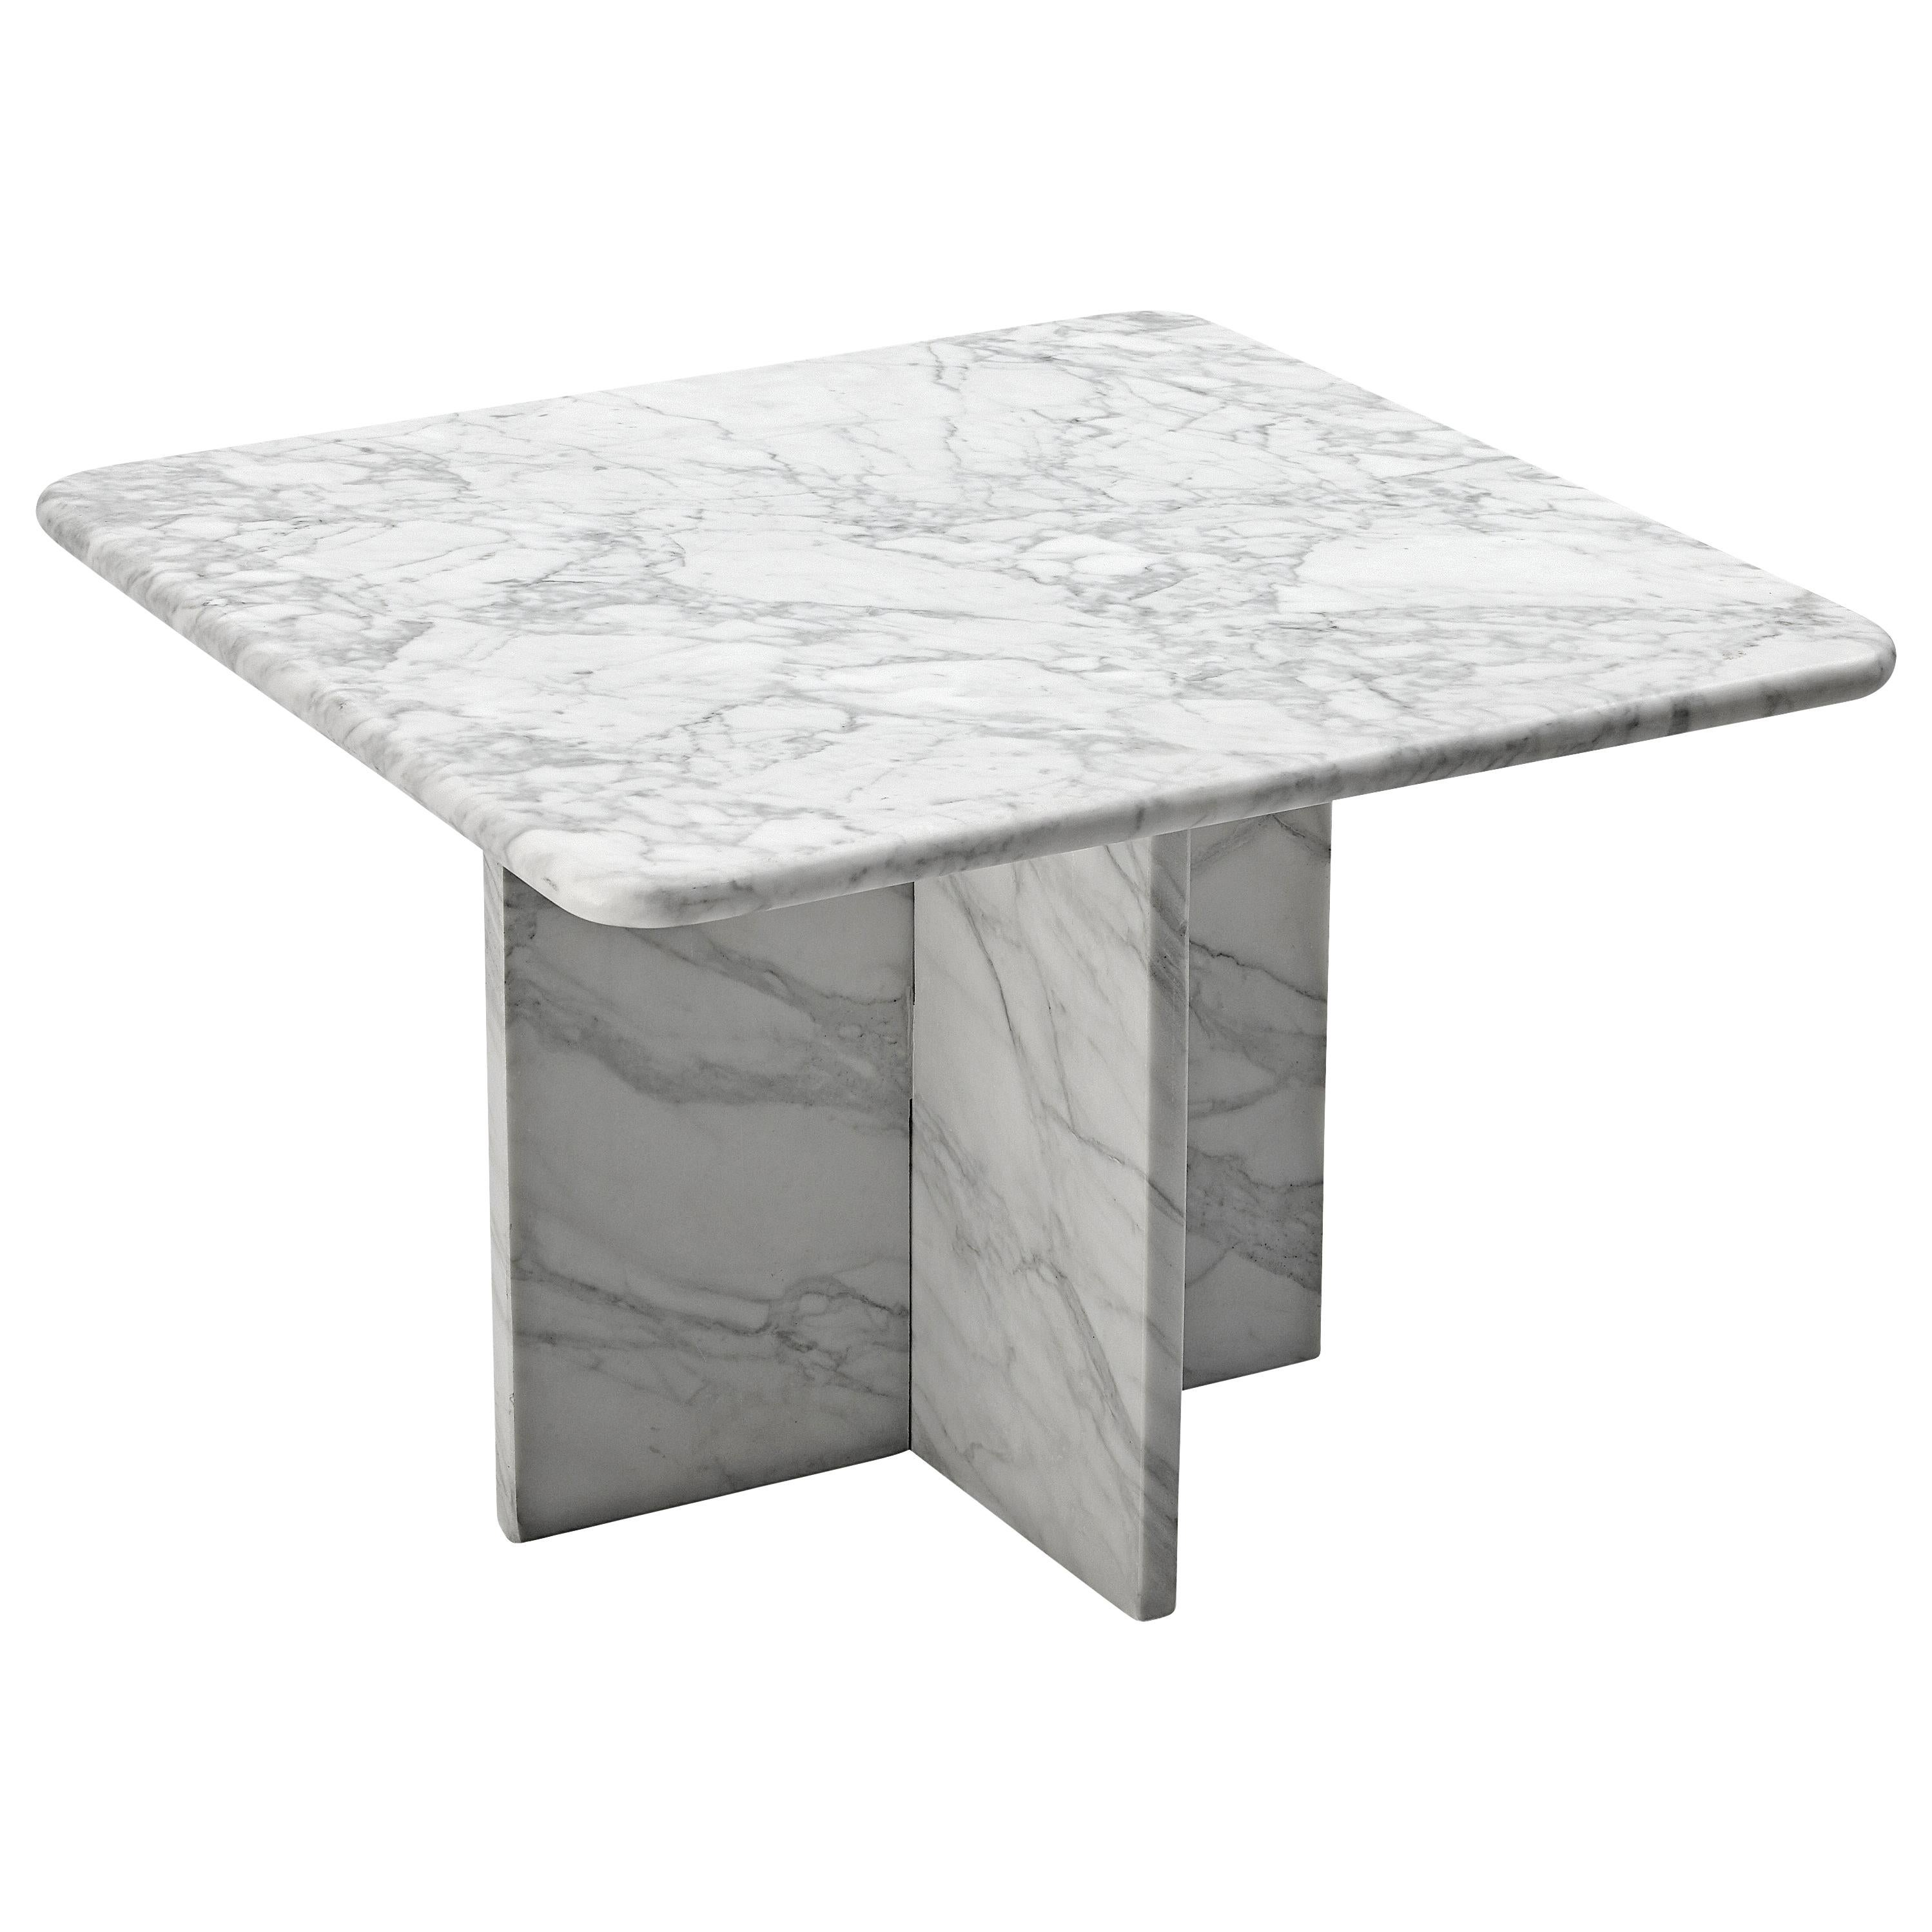 Sculptural Coffee Table in White Marble